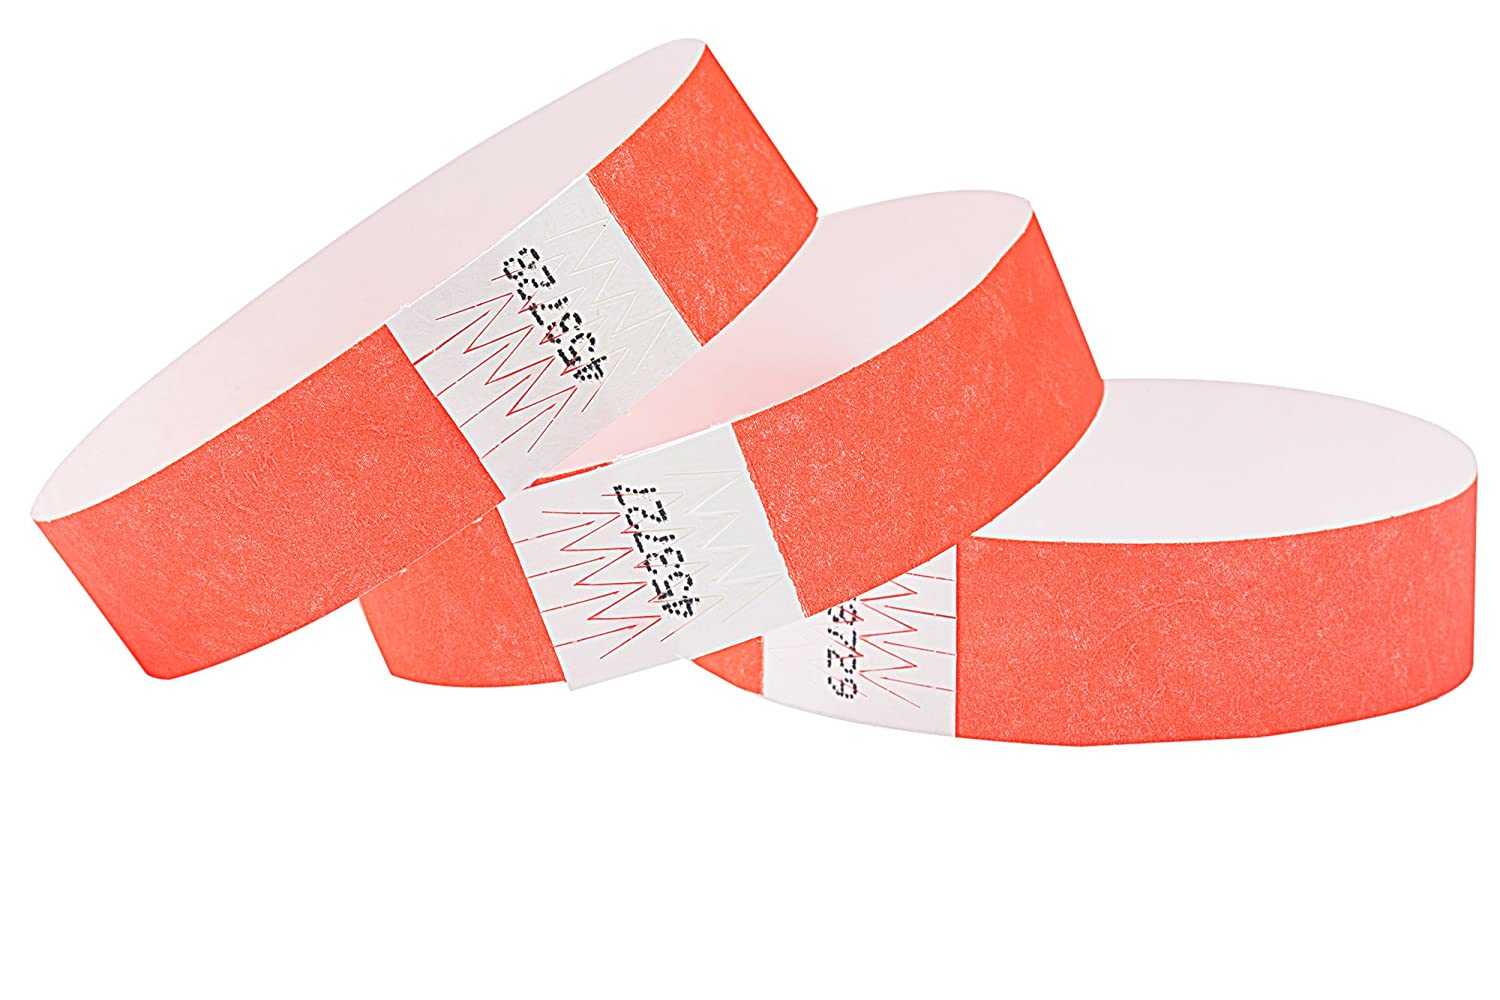 "WRISTBANDS FOR EVENTS 1,000  3//4/""  PAPER TYVEK WRISTBANDS IN 5 COLORS"